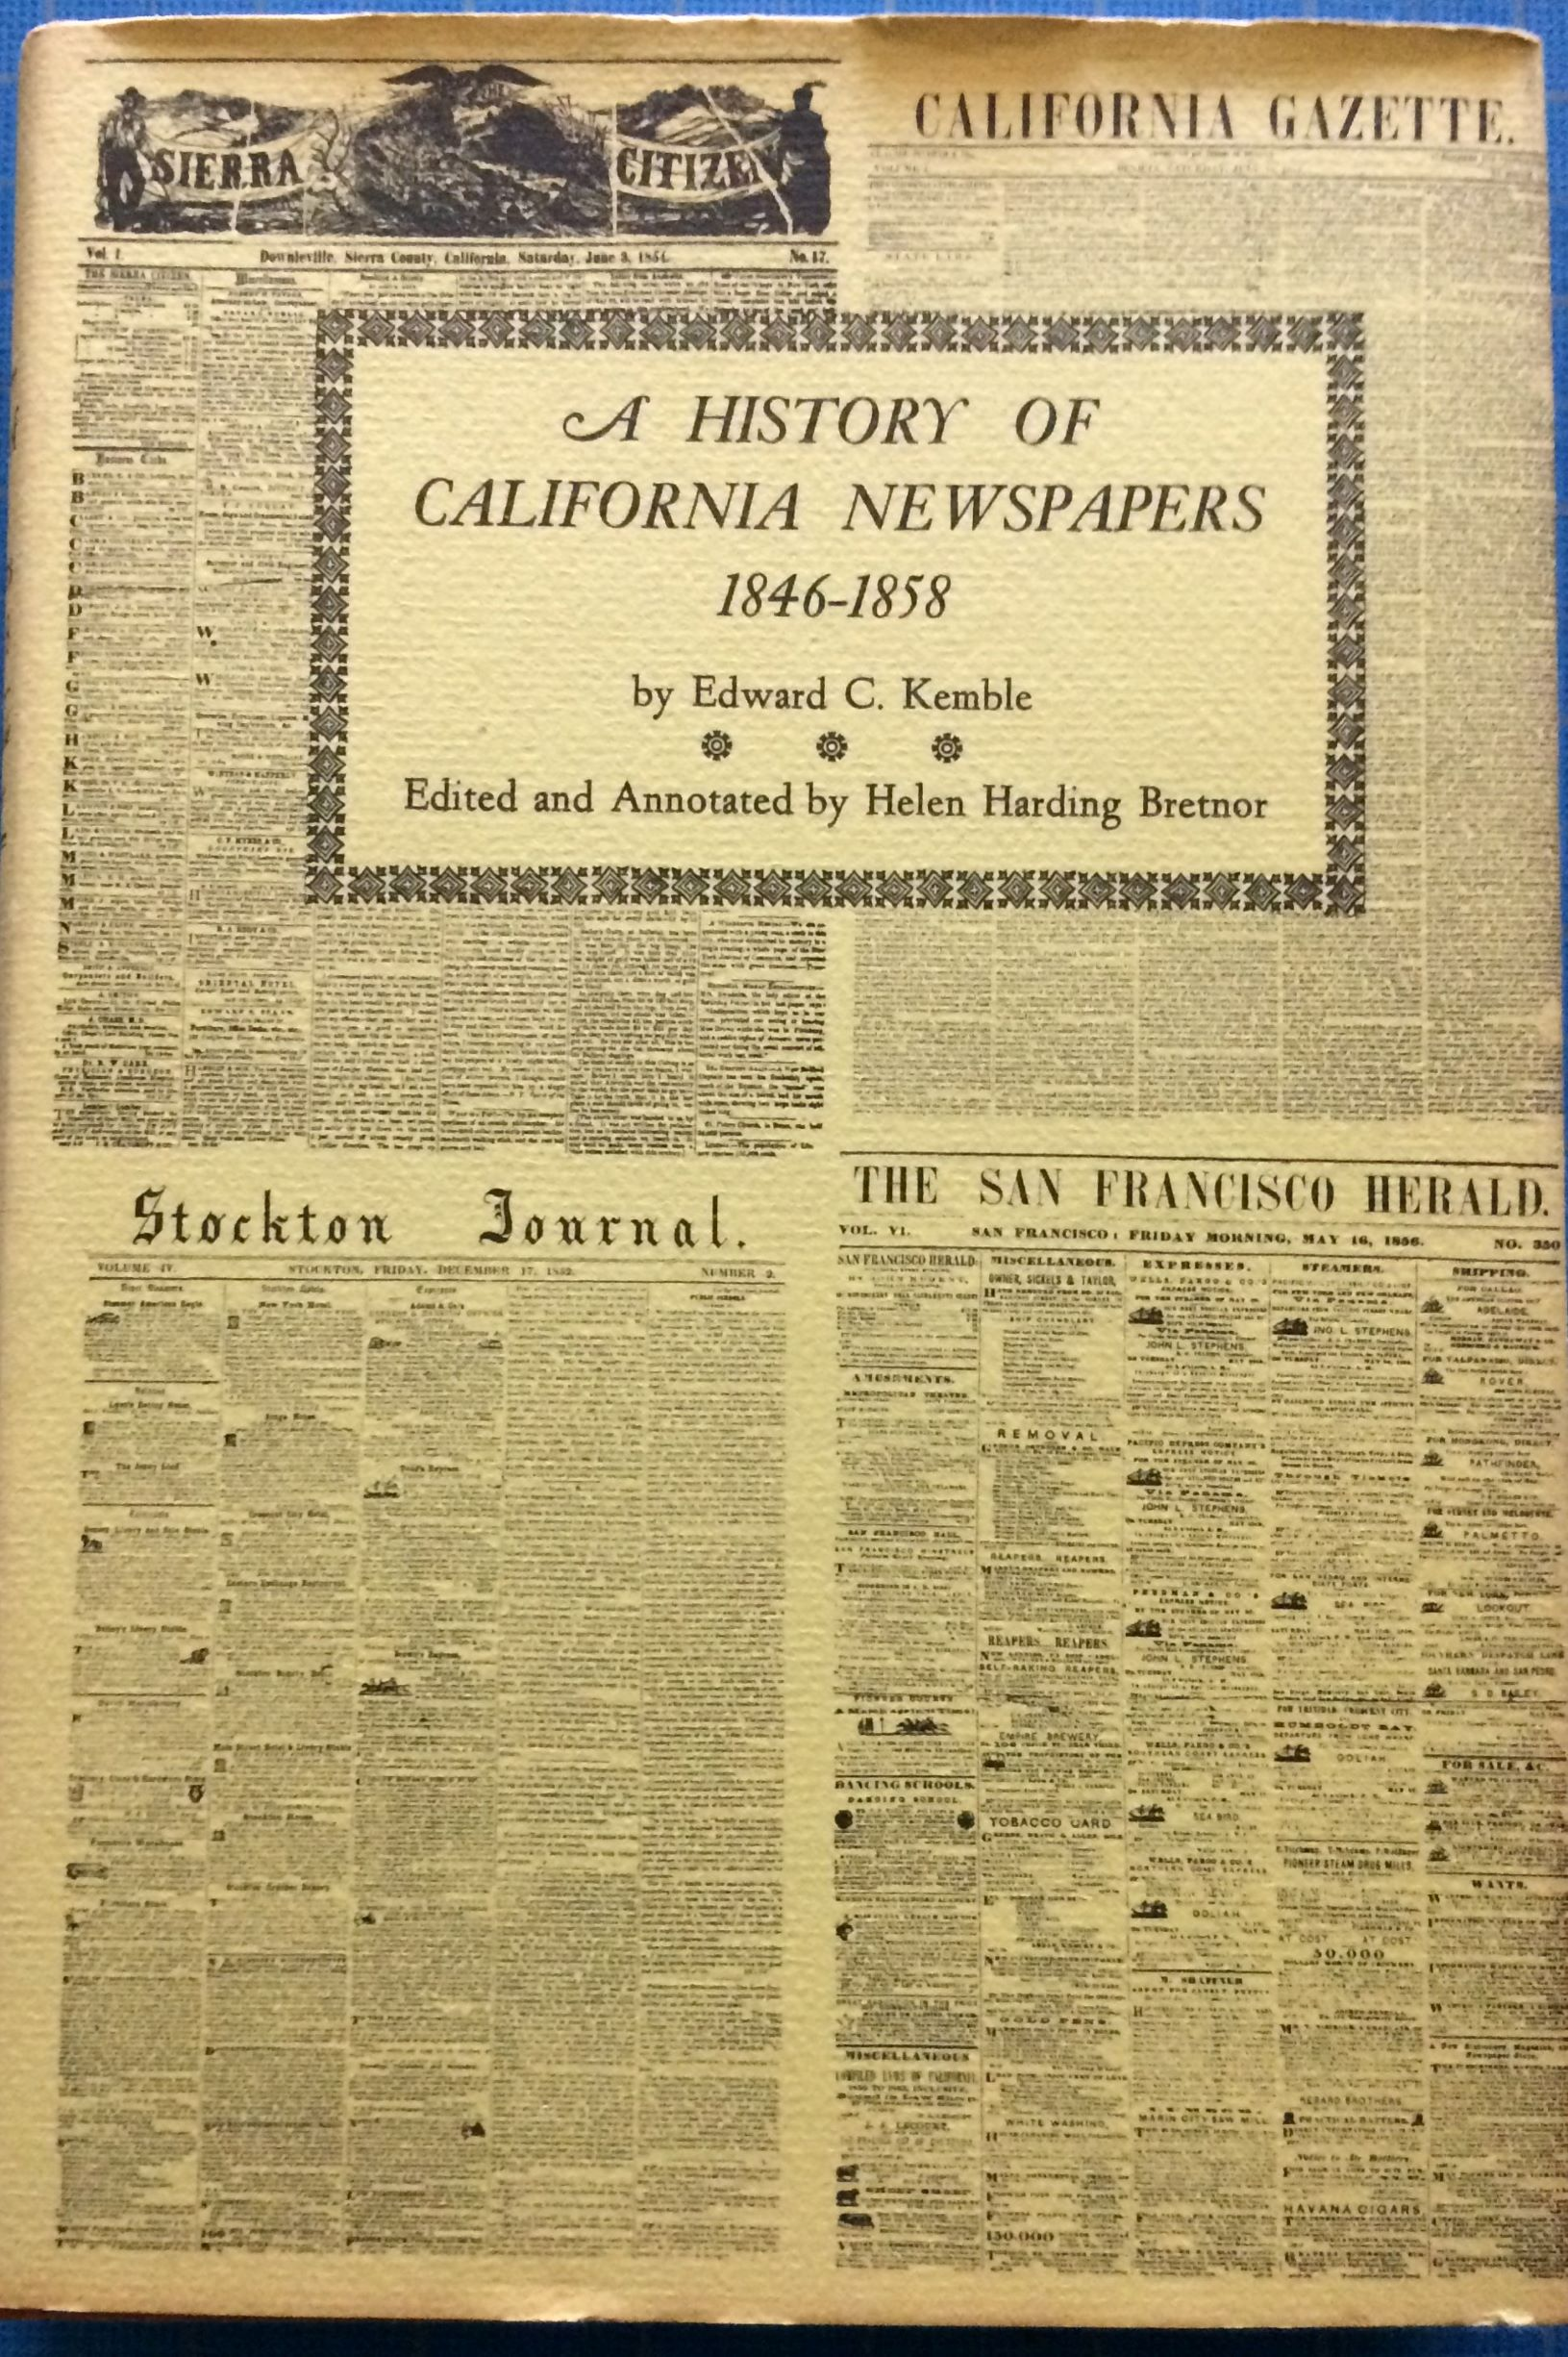 Image for A History of California Newspapers 1846-1858.  Reprinted from the Supplement to the Sacramento Union of December 25, 1858